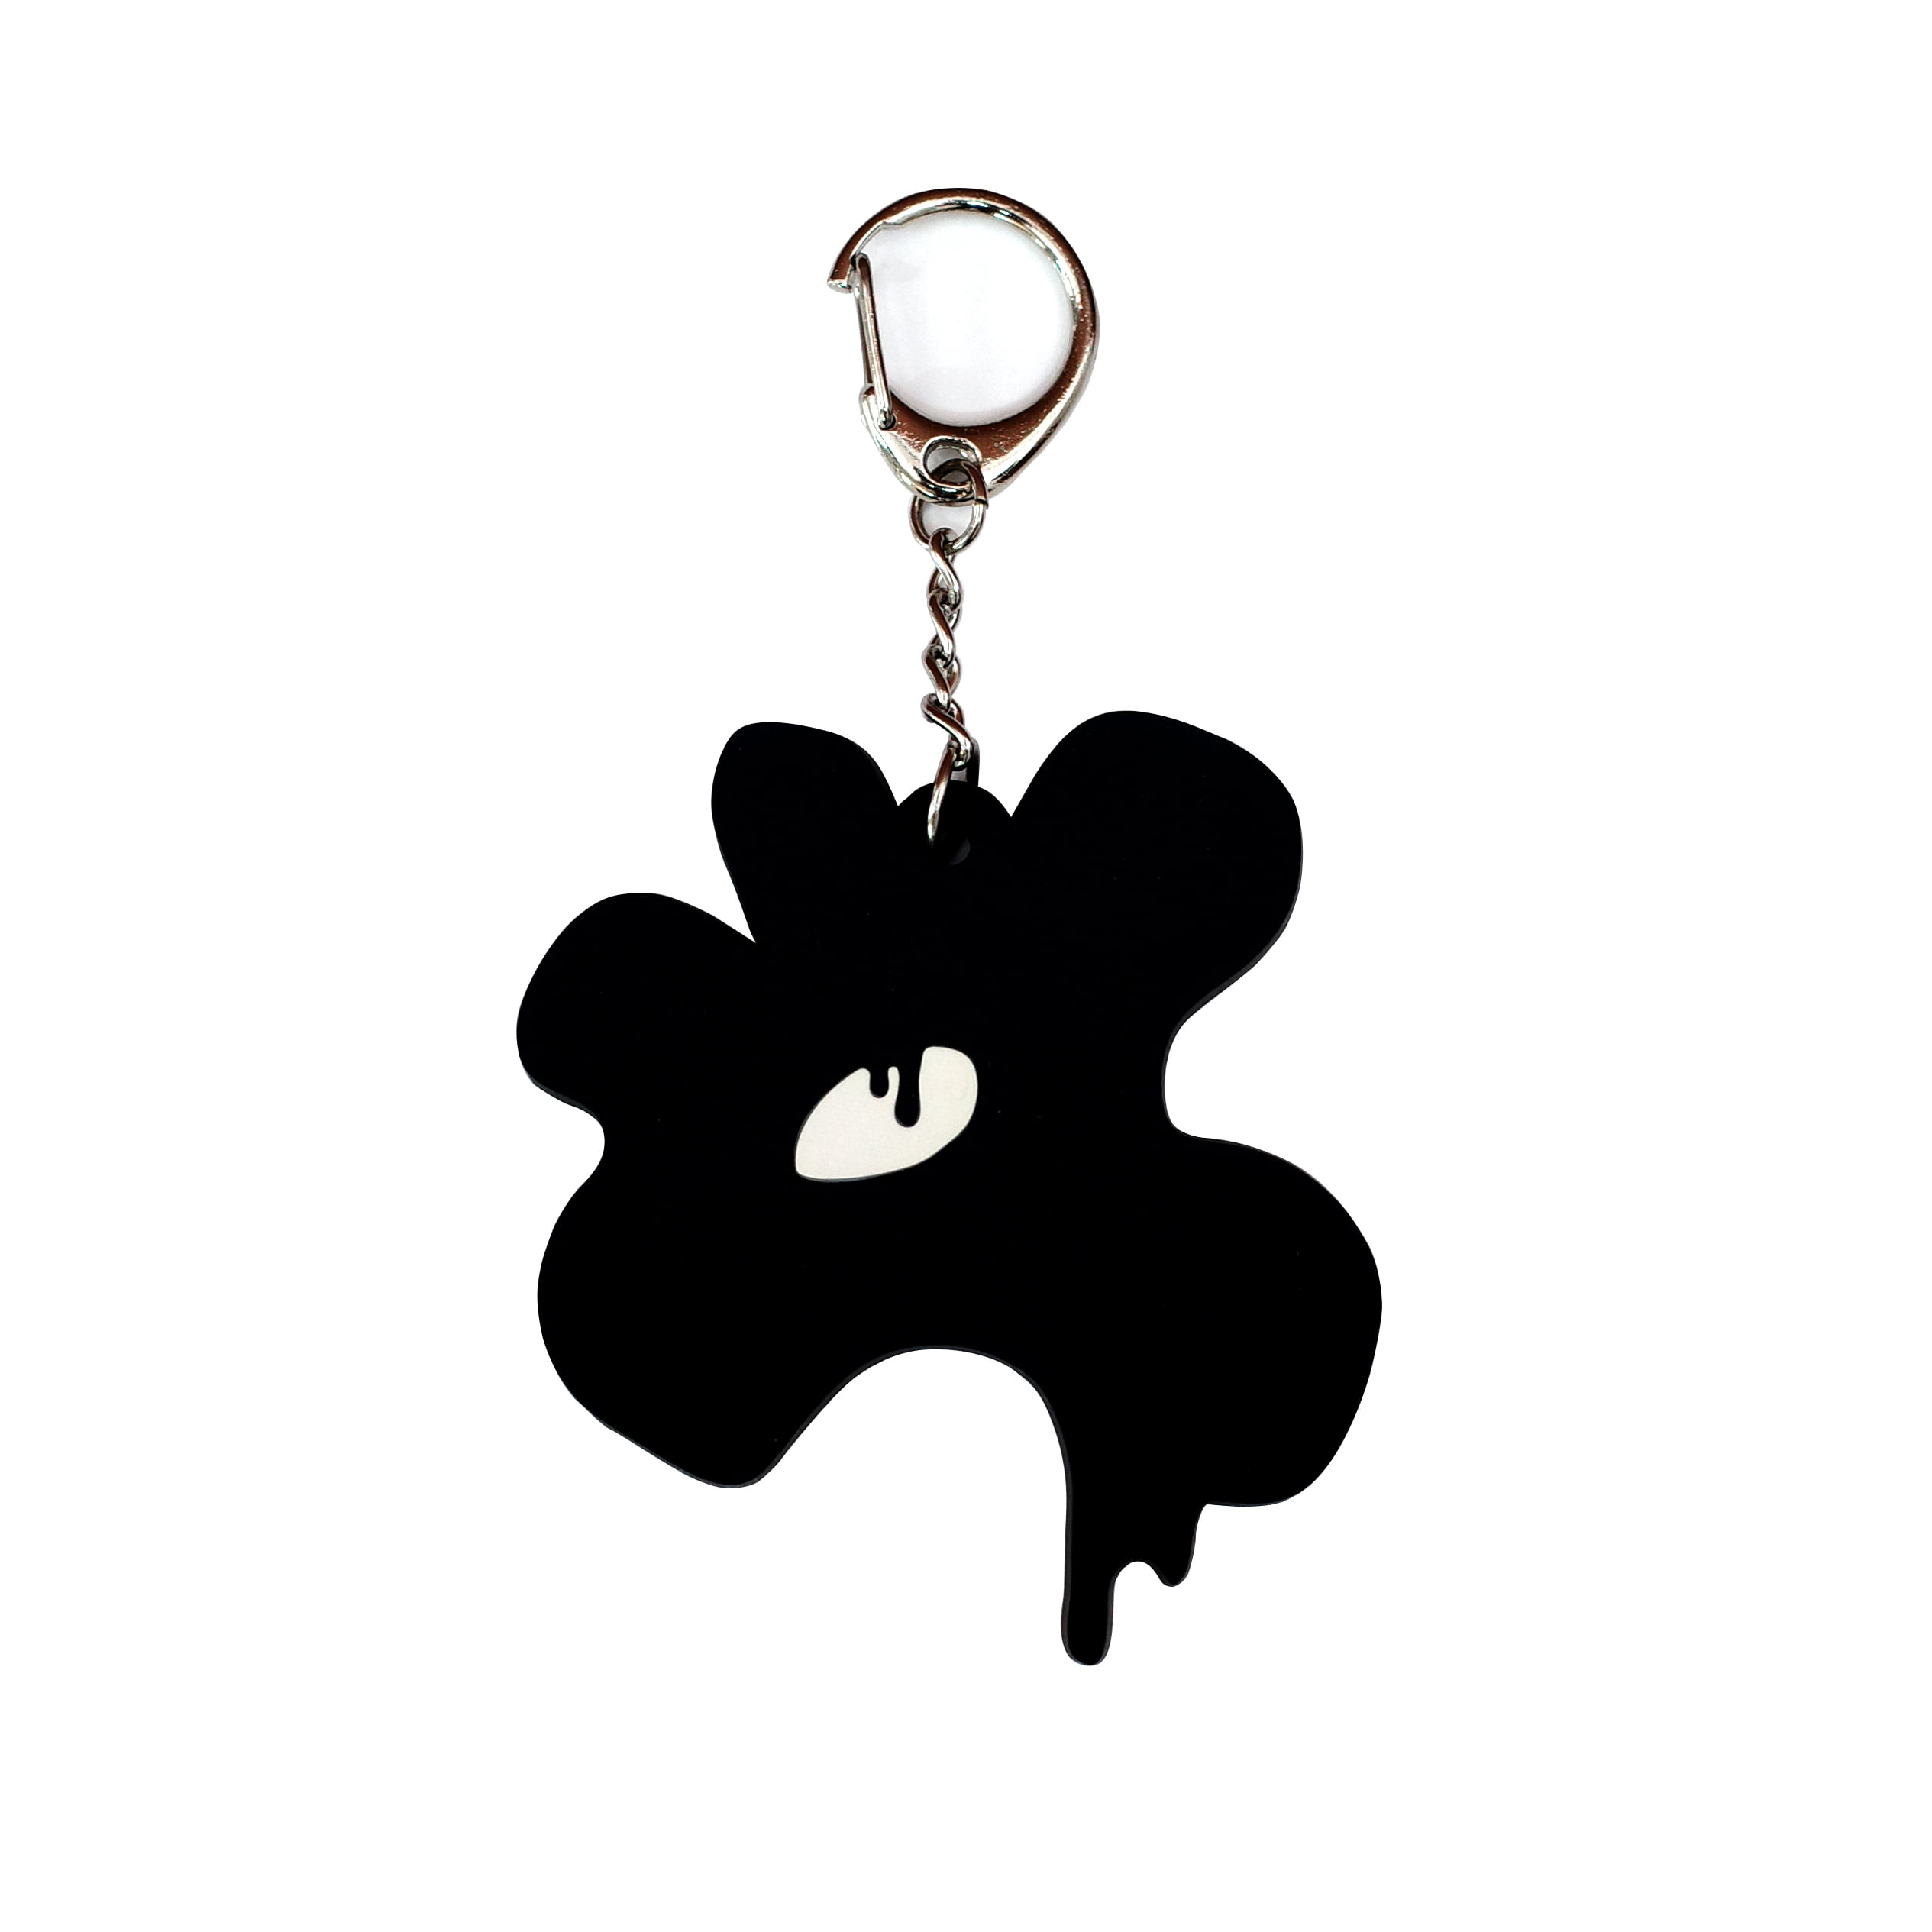 Melting Flower Key Ring